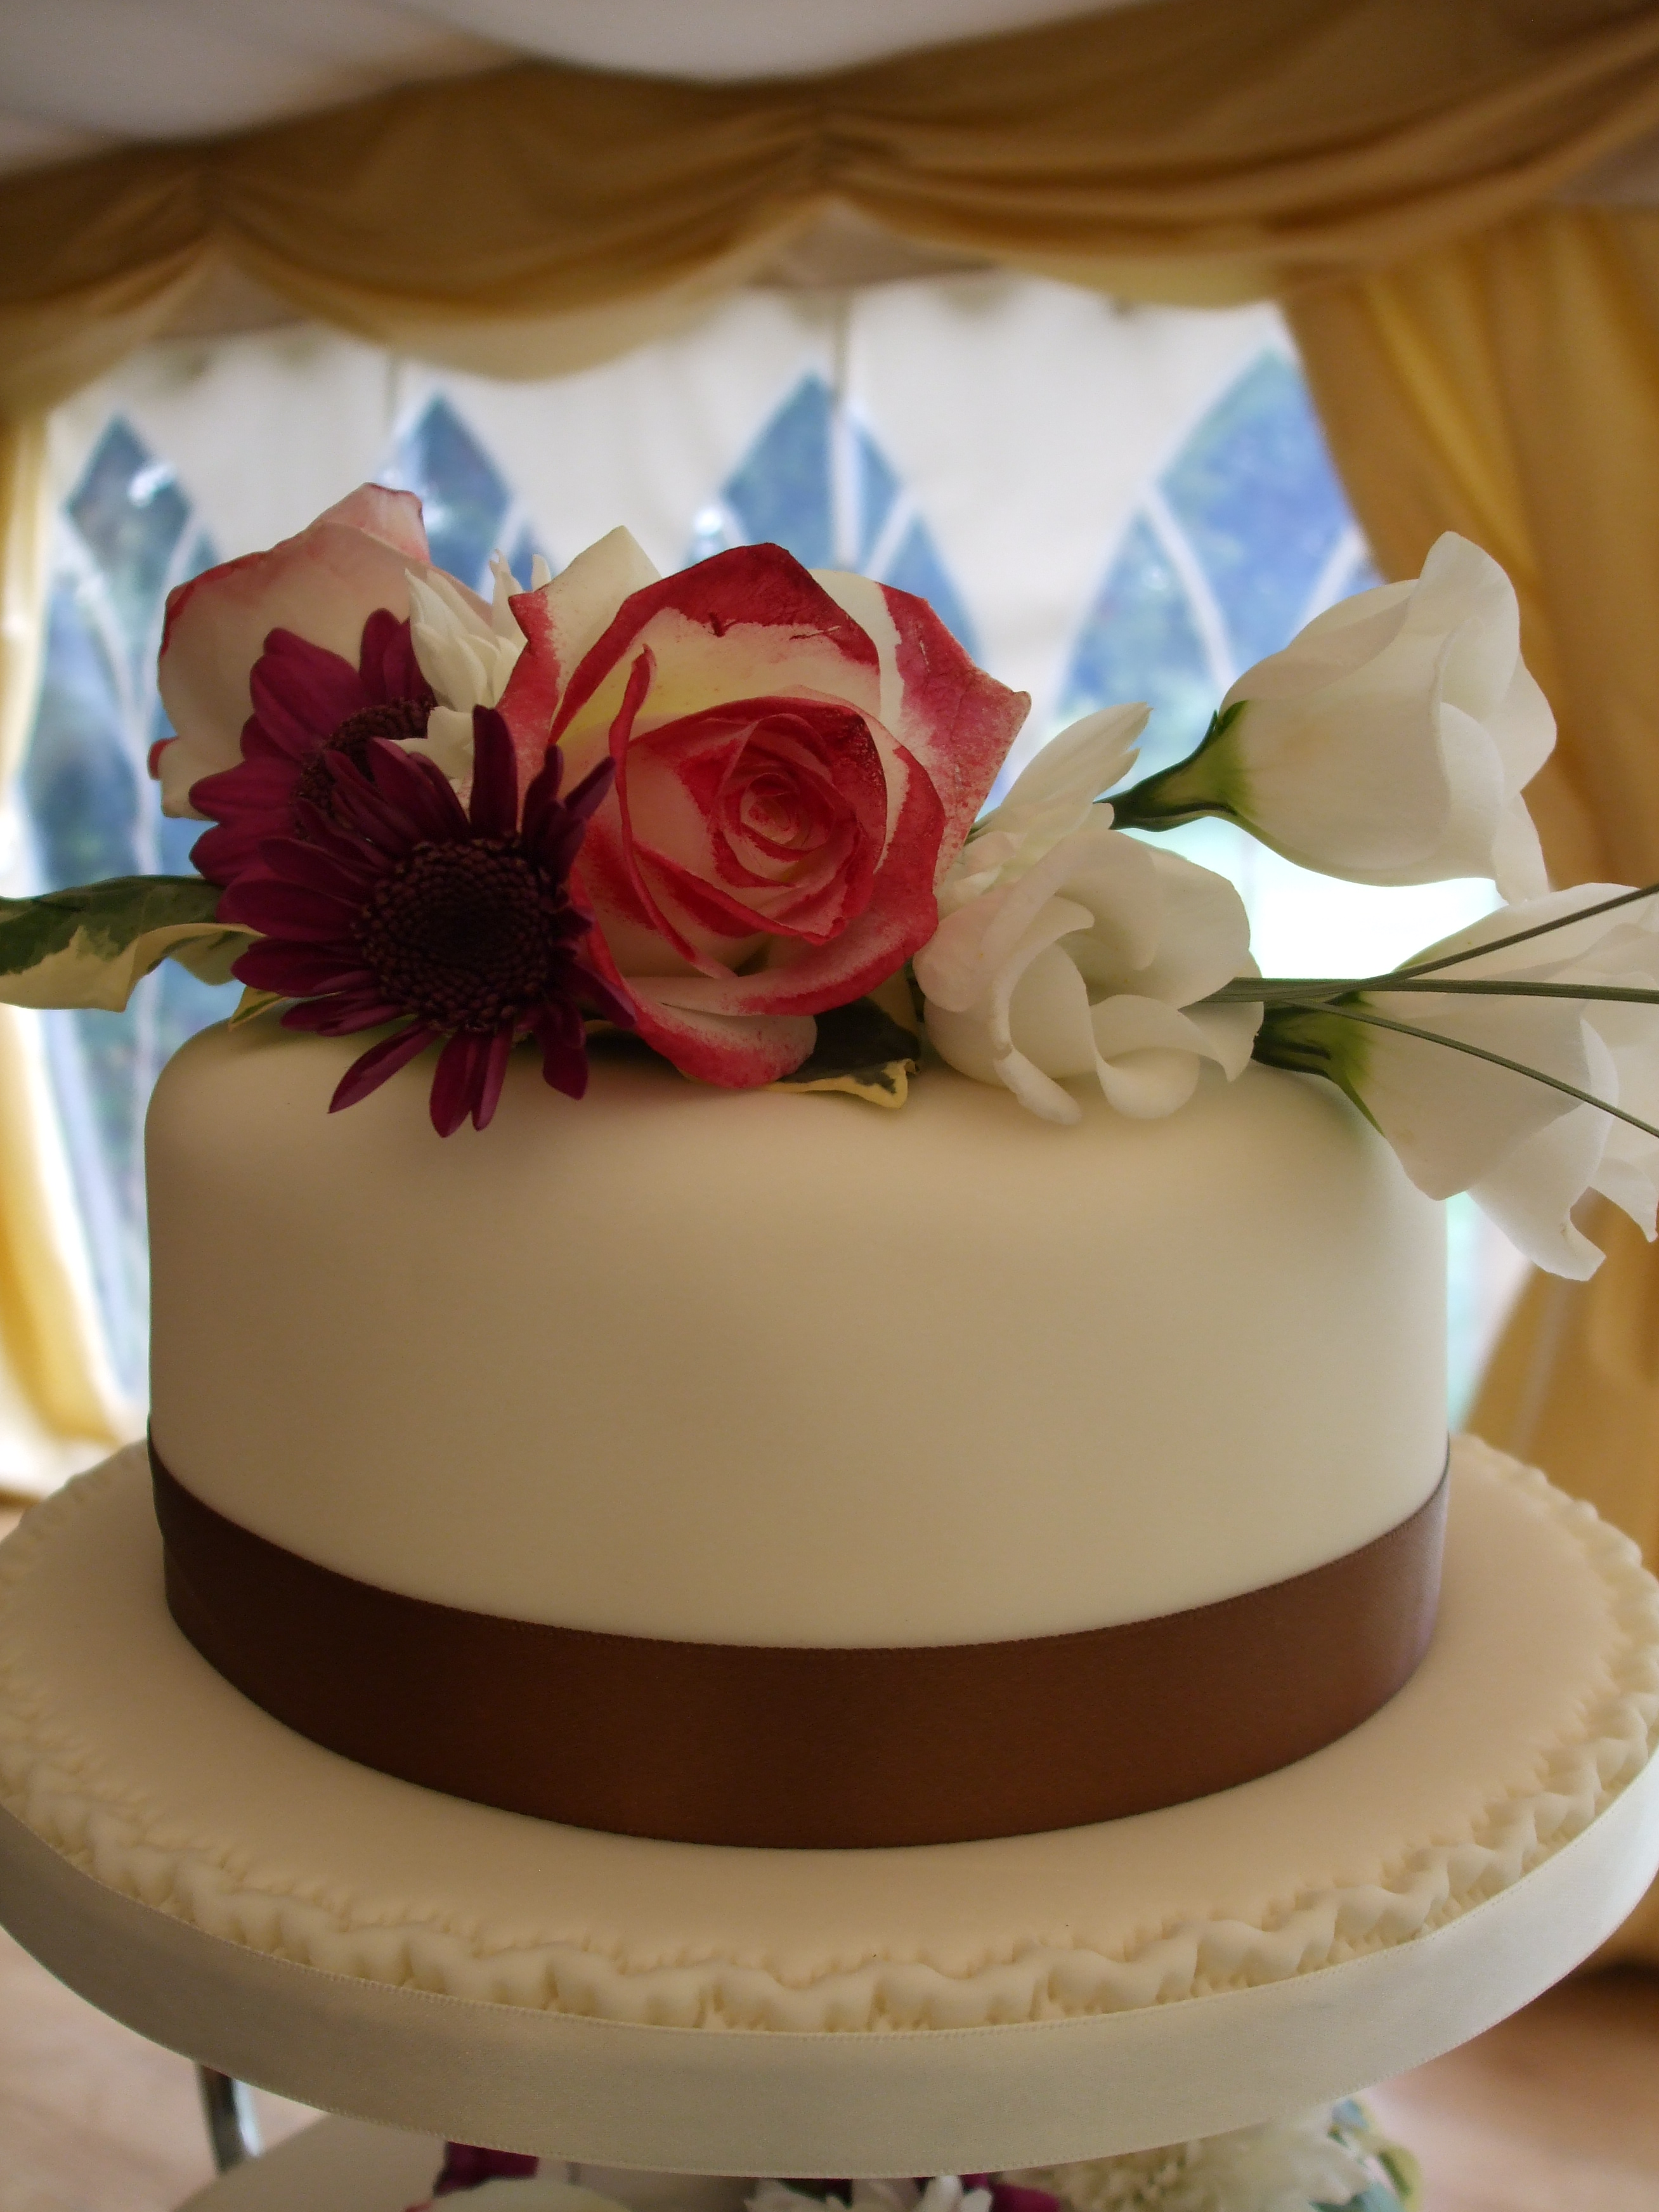 Cake Decorating Artificial Flowers : Cake Flower Decorations, Artificial flowers ...